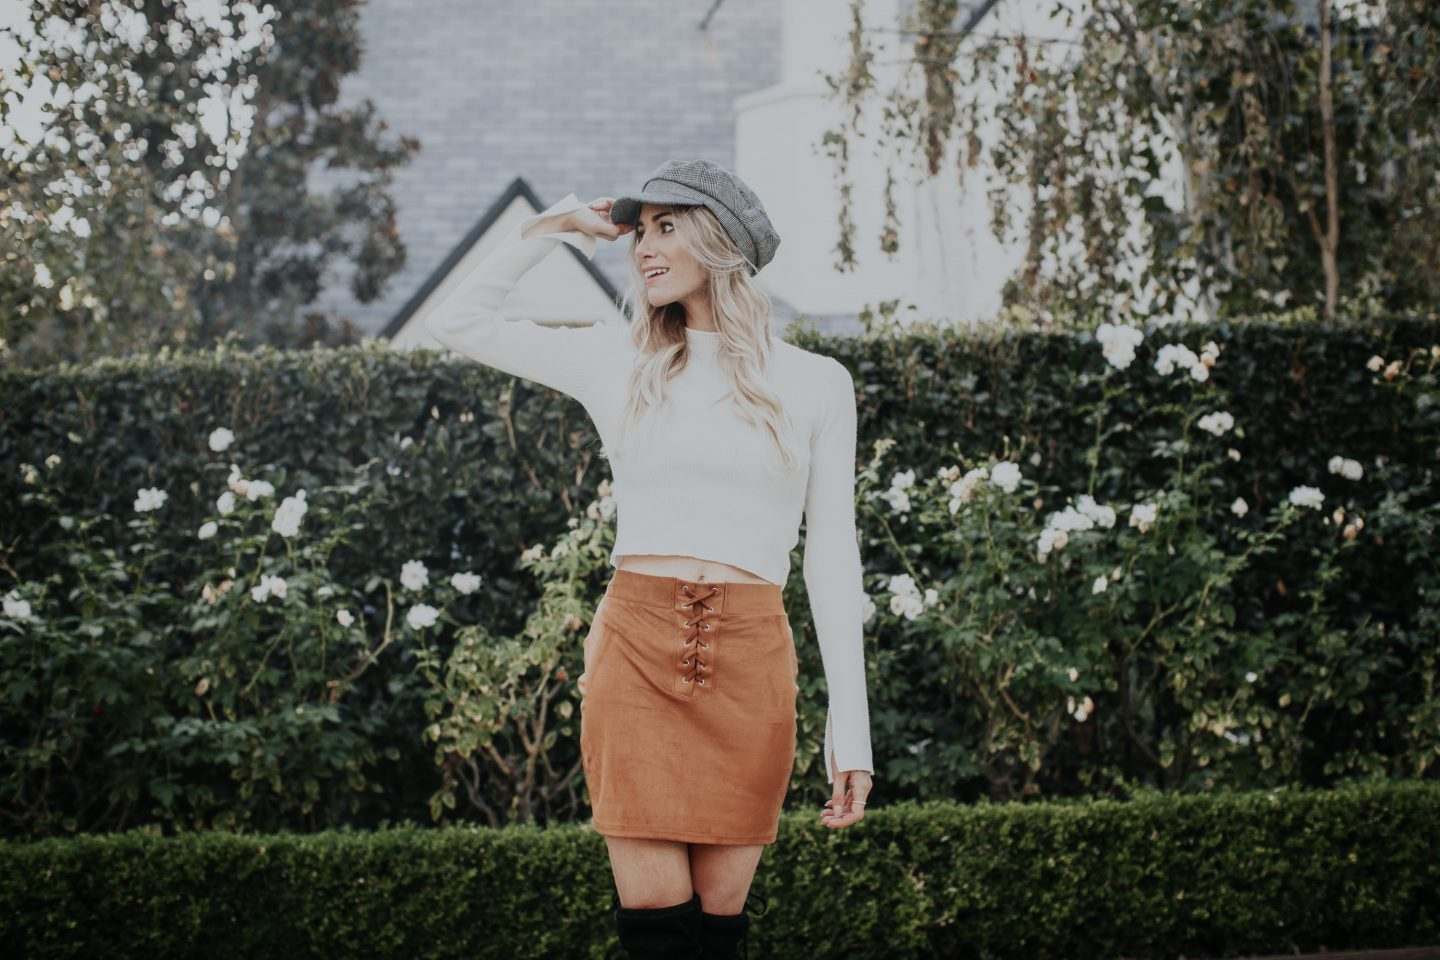 Moto Cap + Lace Up Skirt